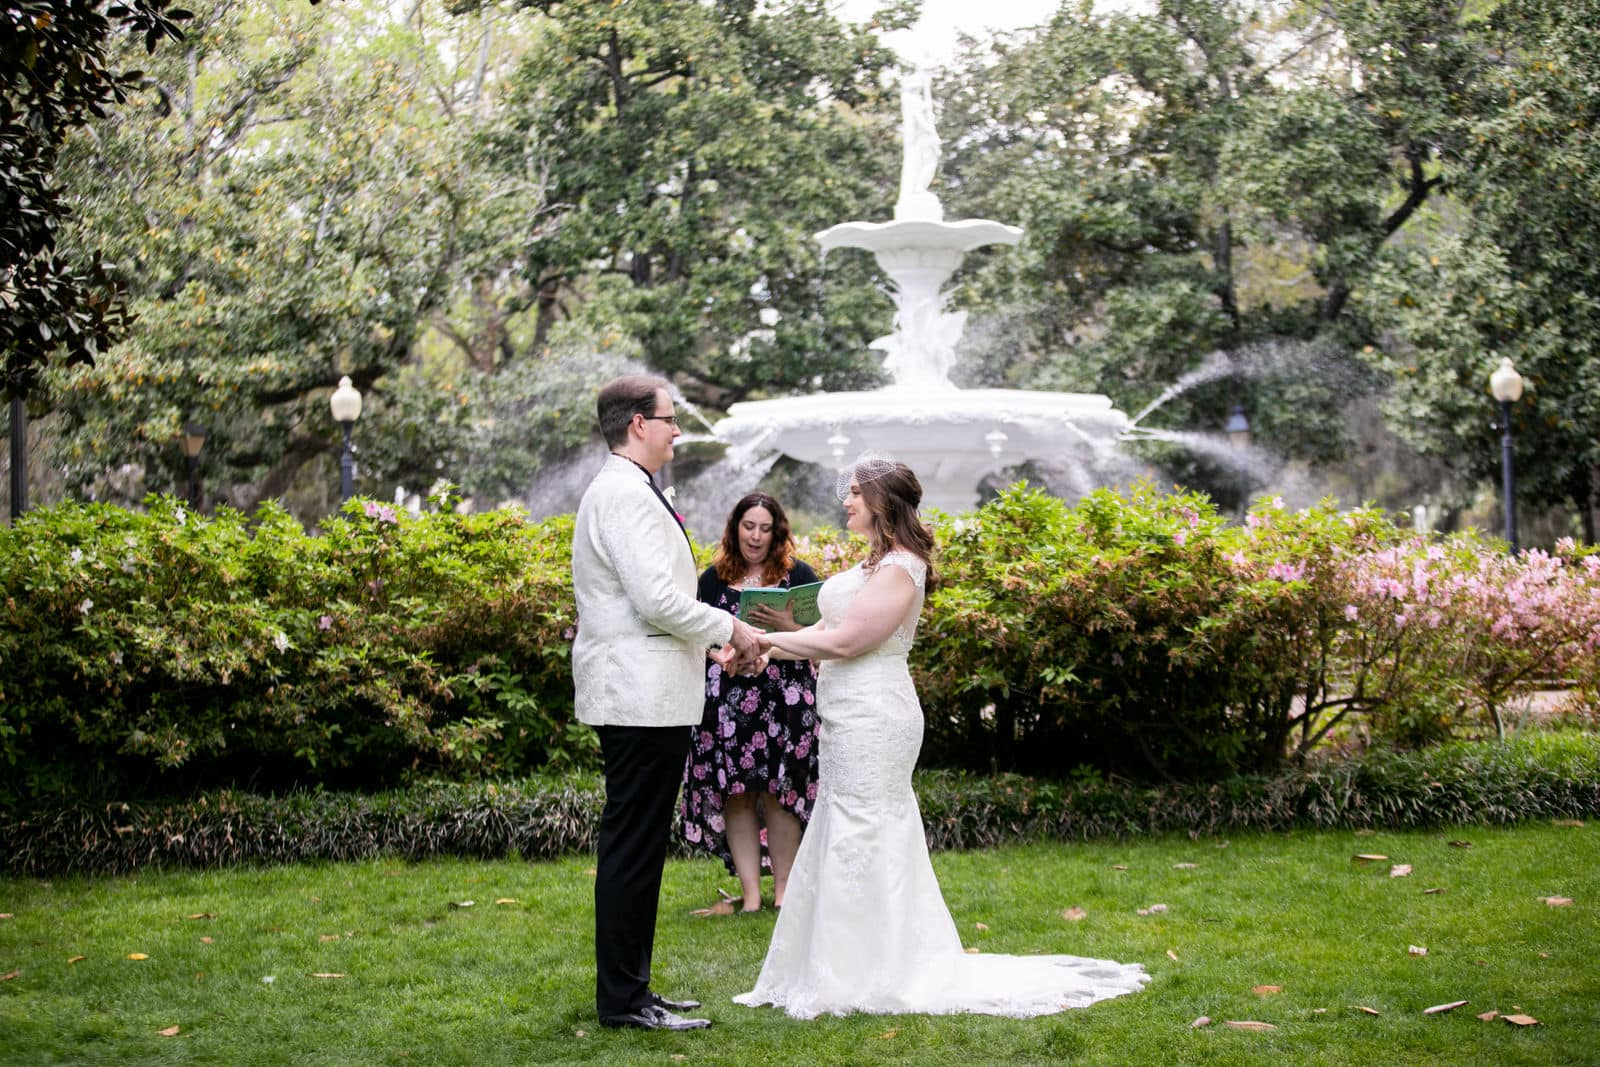 Booking Your Savannah Elopement & COVID-19